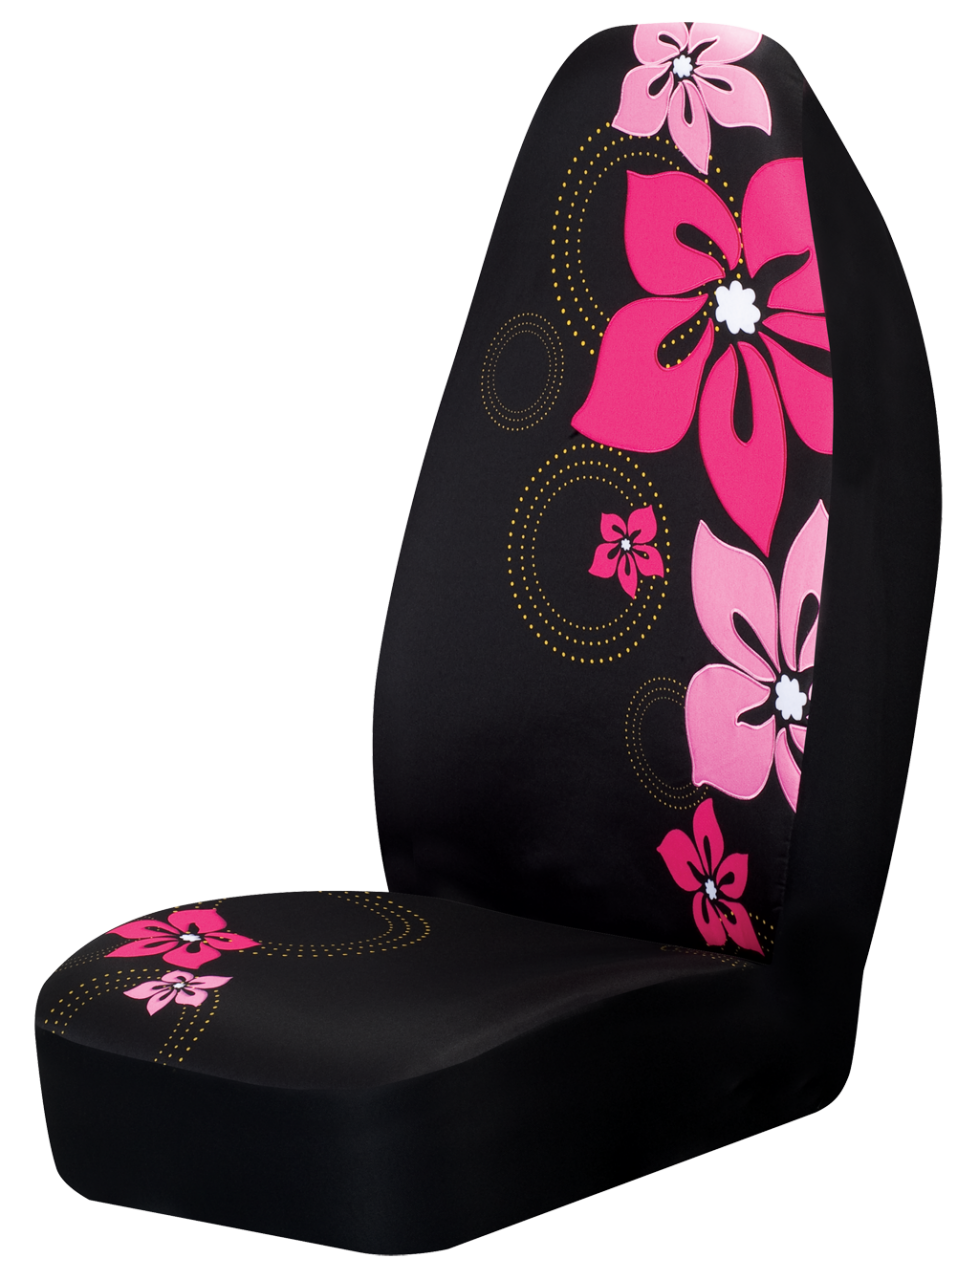 Hot pink flower car seat cover girly car accessory car pinterest hot pink flower car seat cover girly car accessory izmirmasajfo